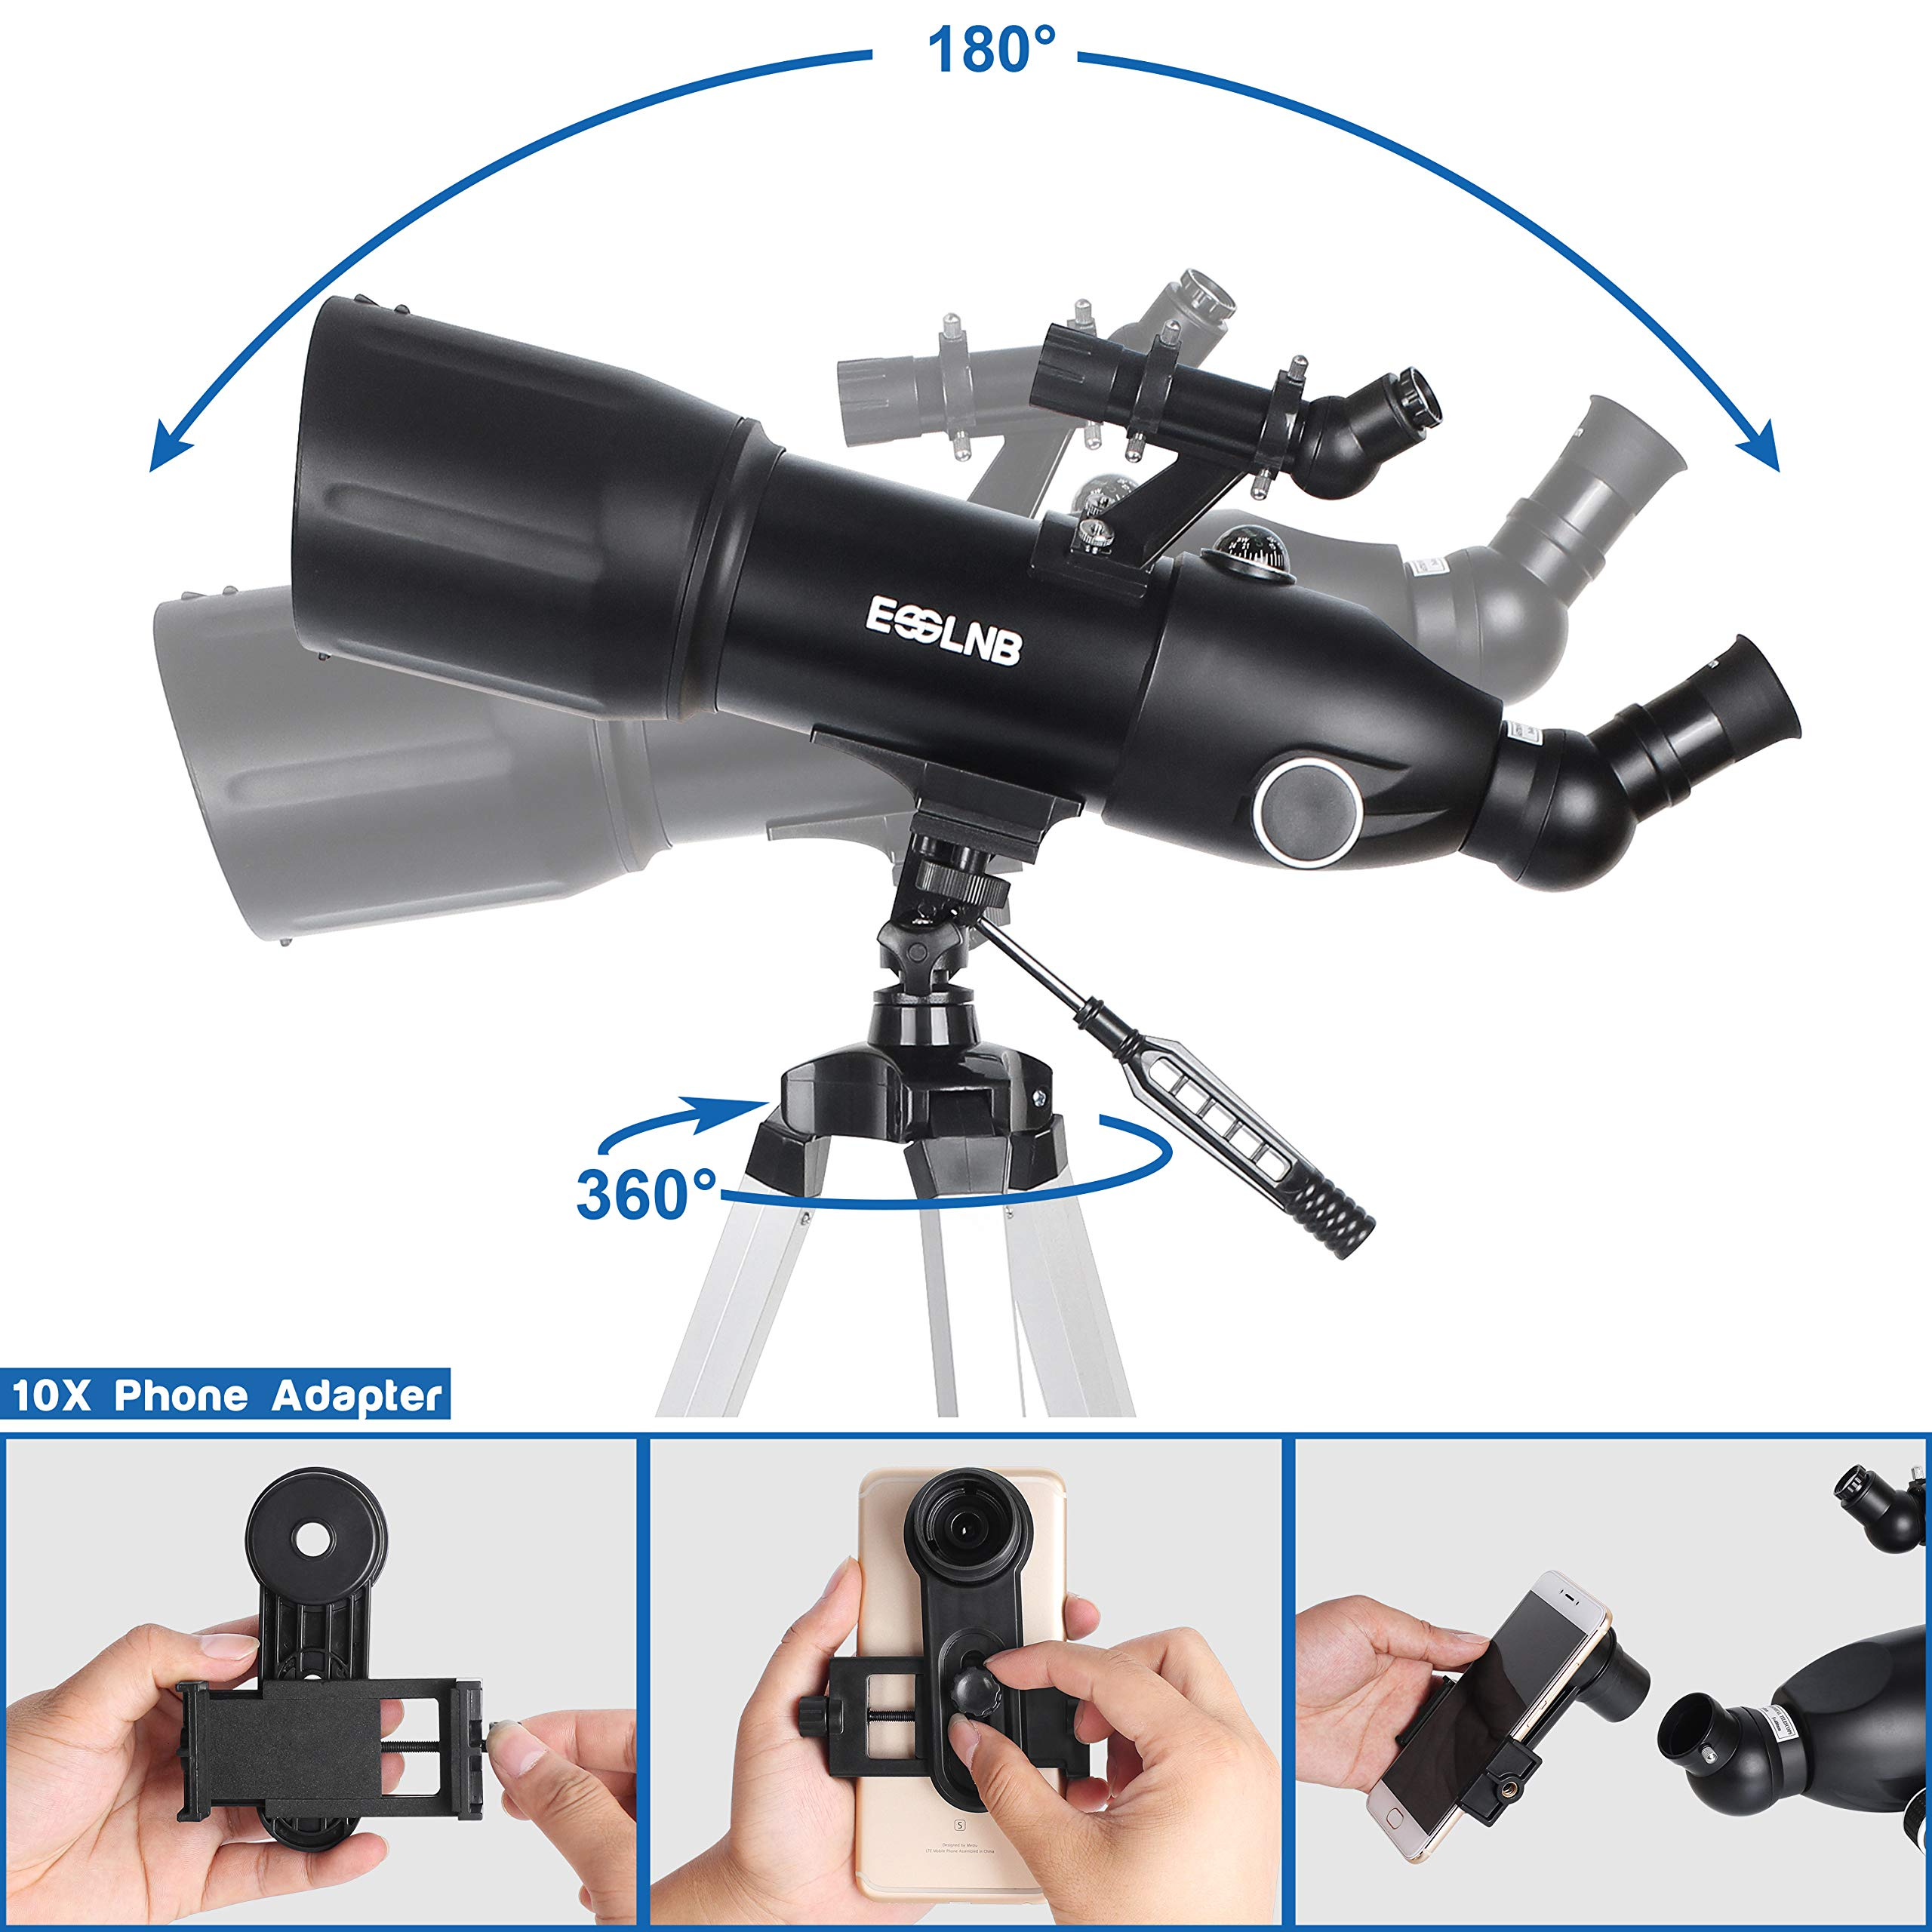 ESSLNB Telescopes for Adults Astronomy Beginners Kids 400X80mm with 10X Smartphone Adapter Adjustable Tripod Case and Moon Filter Erect-Image Diagonal Prism by ESSLNB (Image #4)